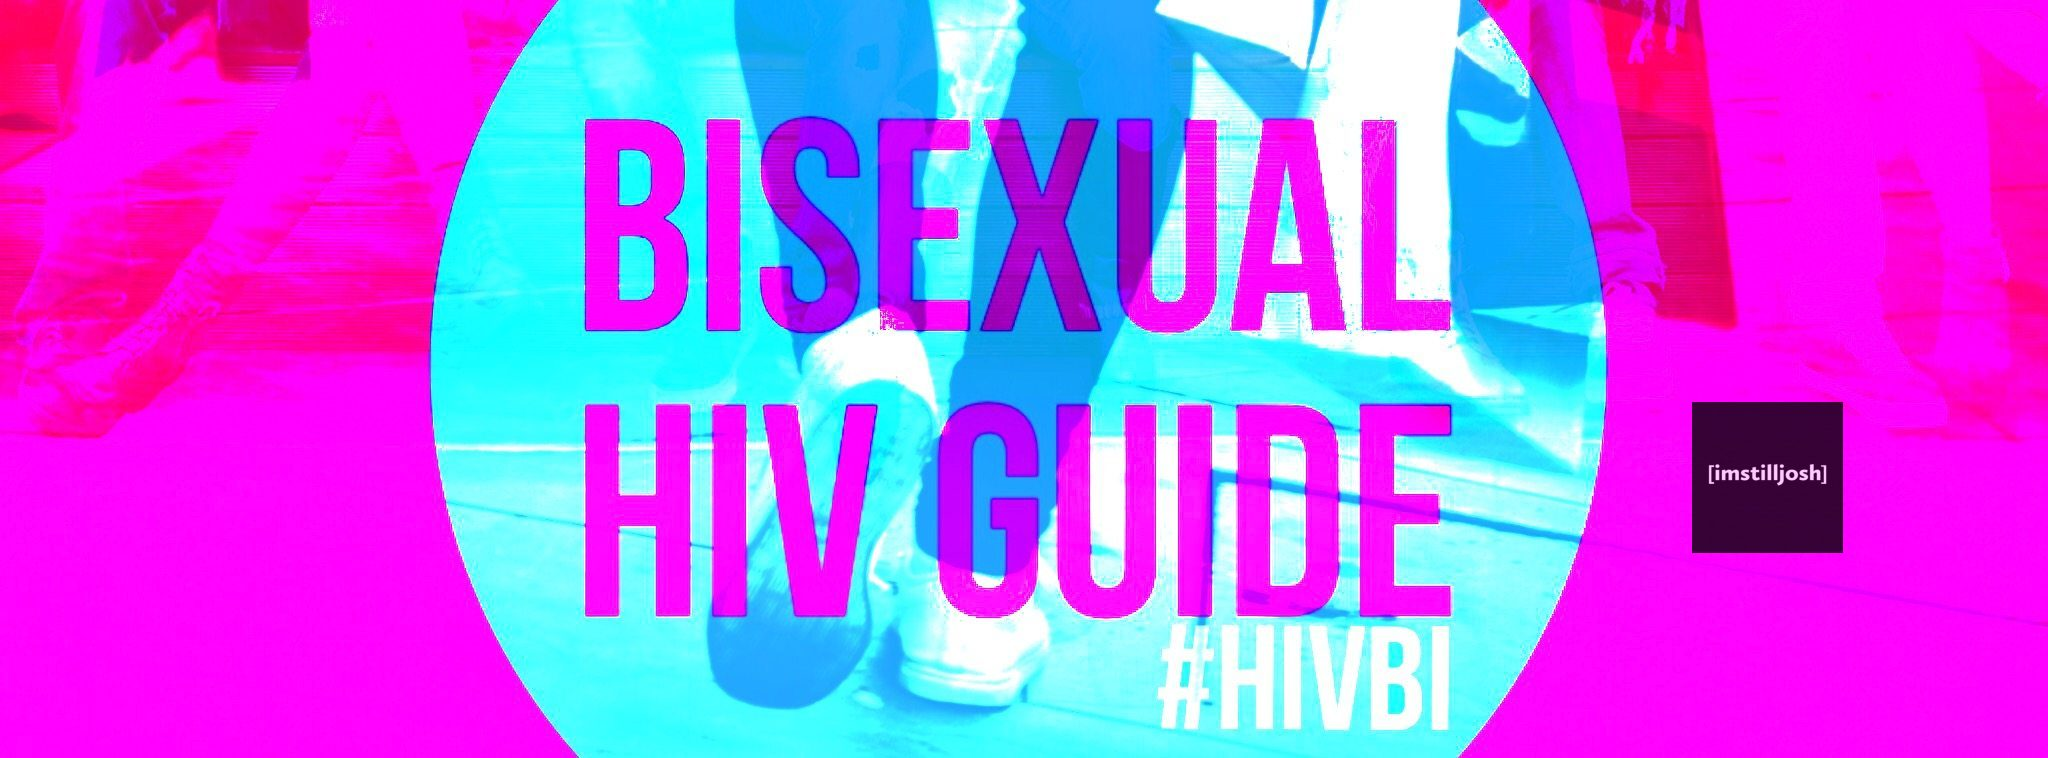 Bisexual HIV Guide